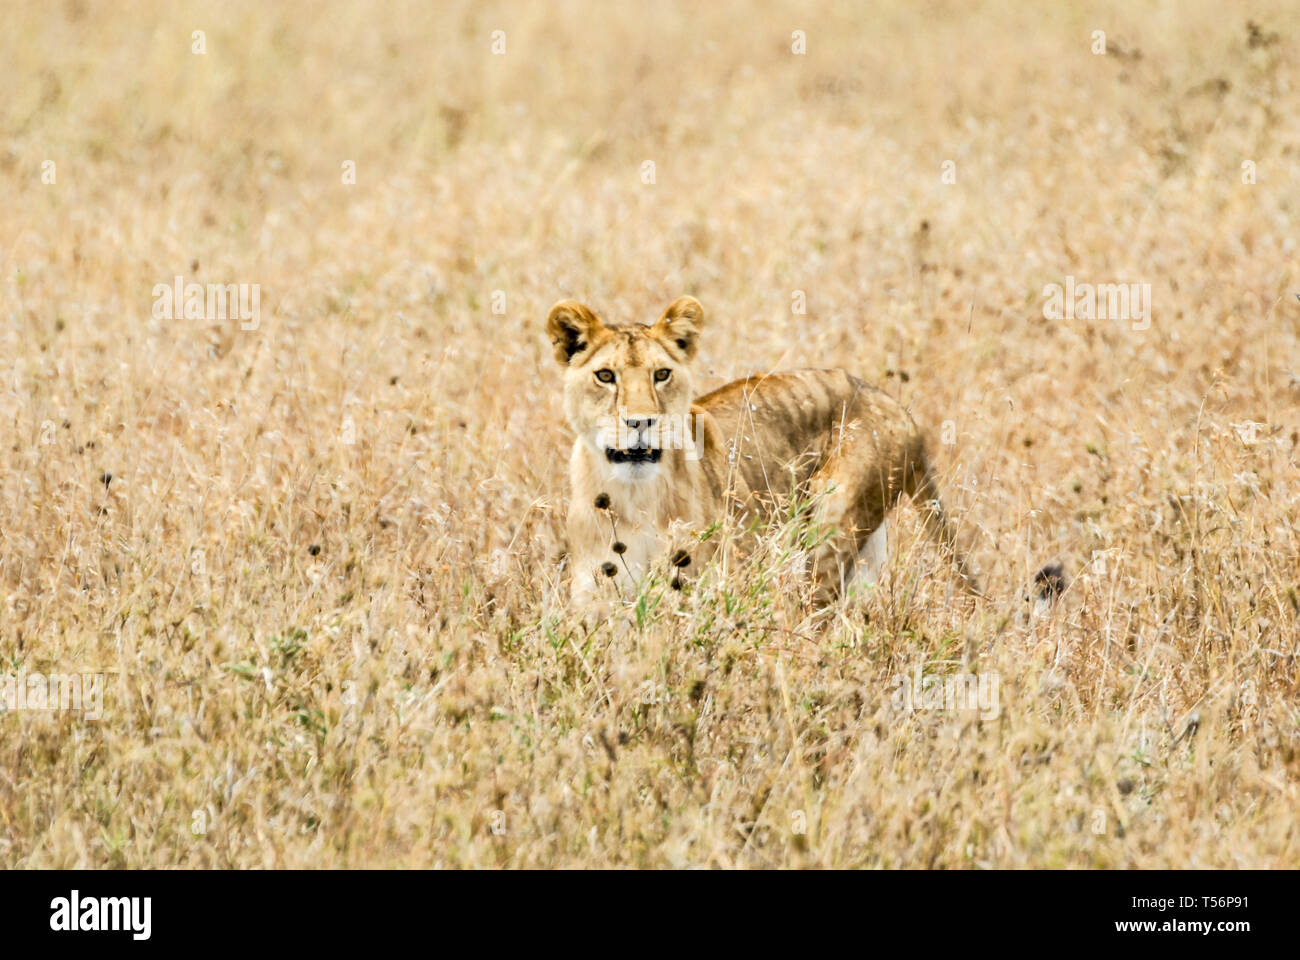 Tanzania Safari Stock Photo